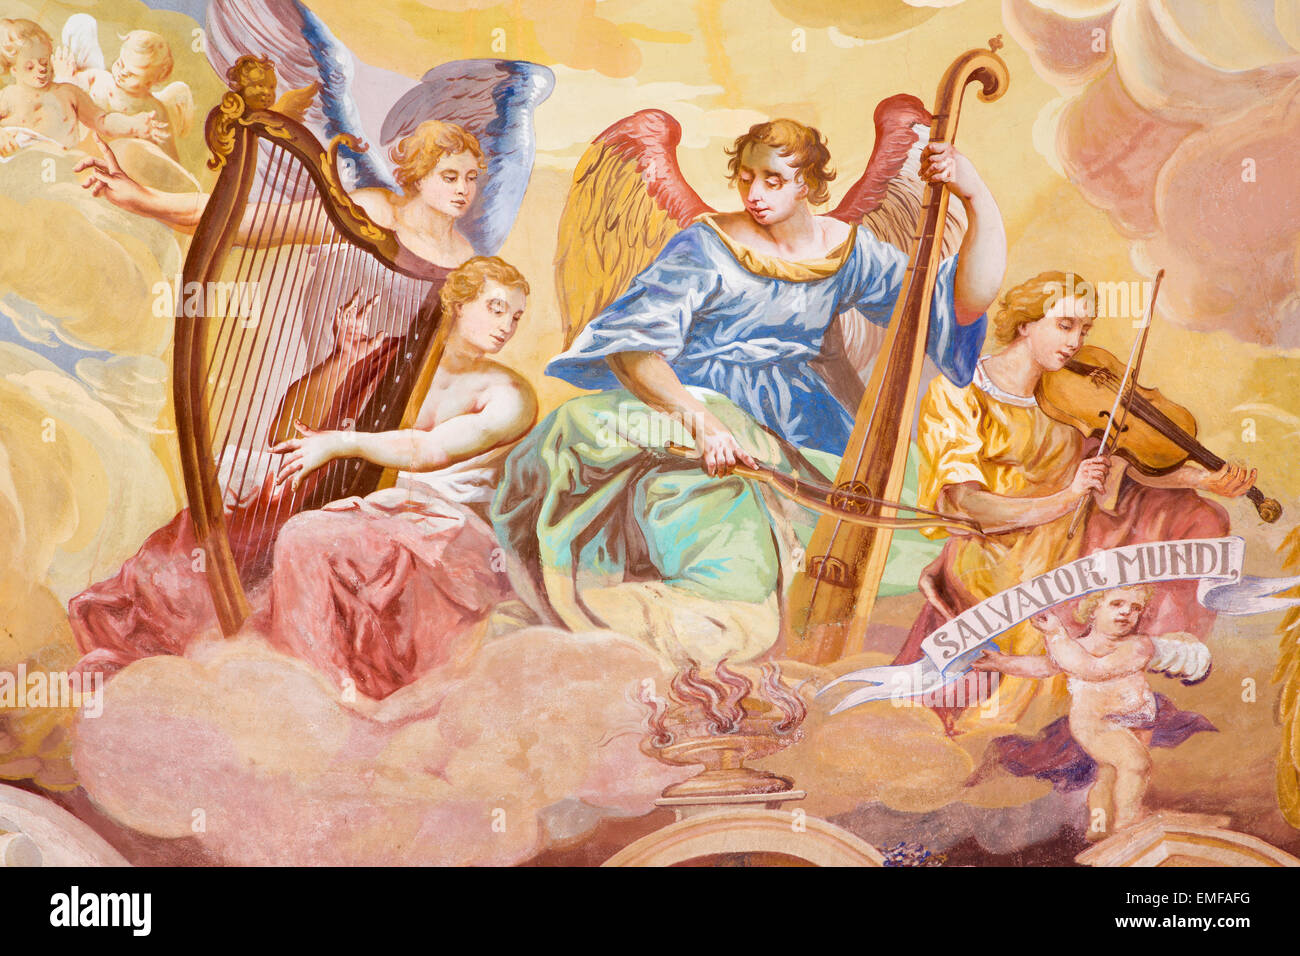 Banska Stiavnica - Angels with the music instruments fresco on cupola in the middle church of baroque calvary. - Stock Image